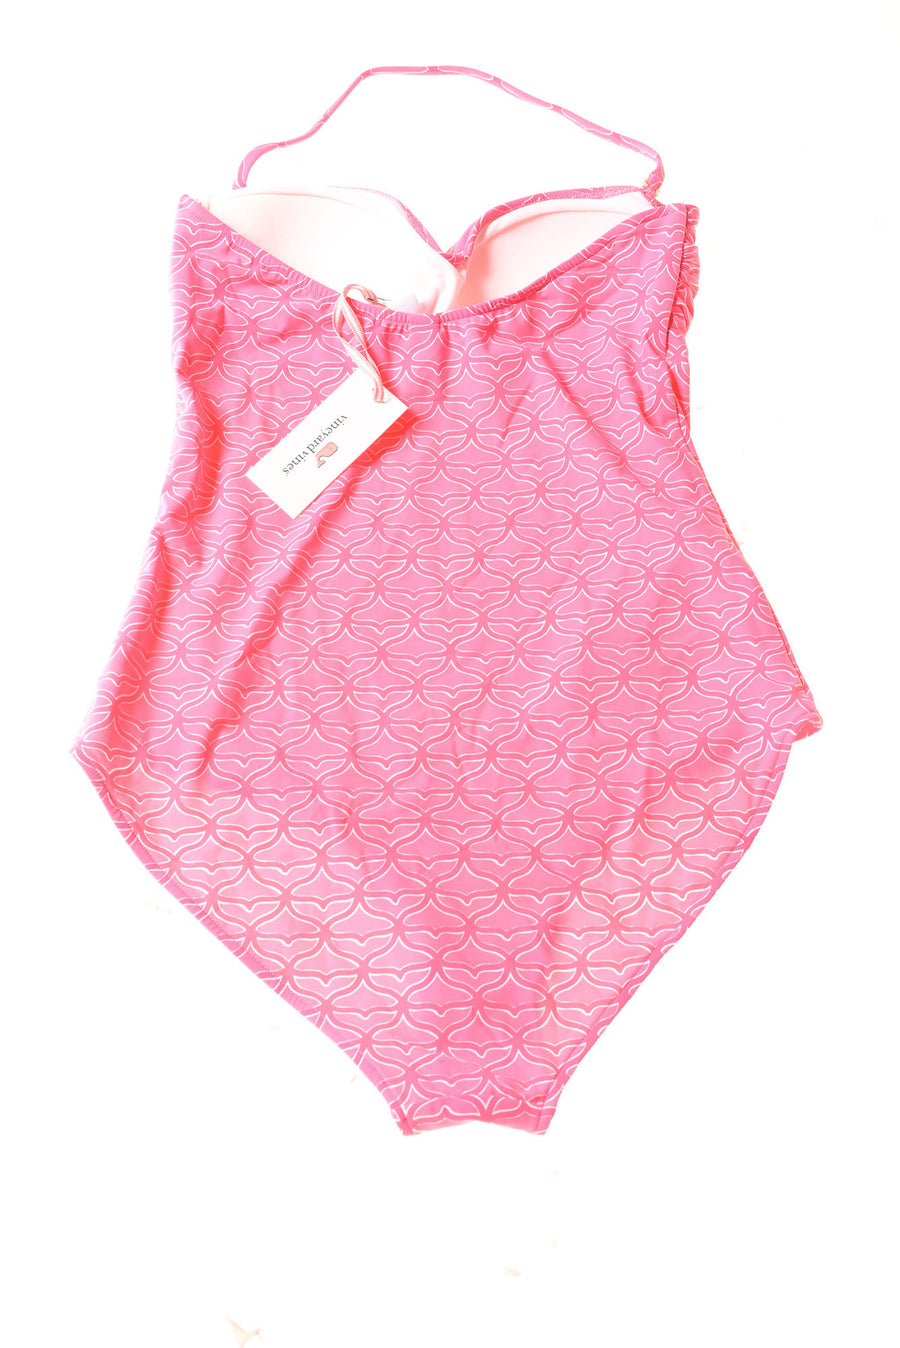 NEW Vineyard Vines Women's Swimwear Medium Pink